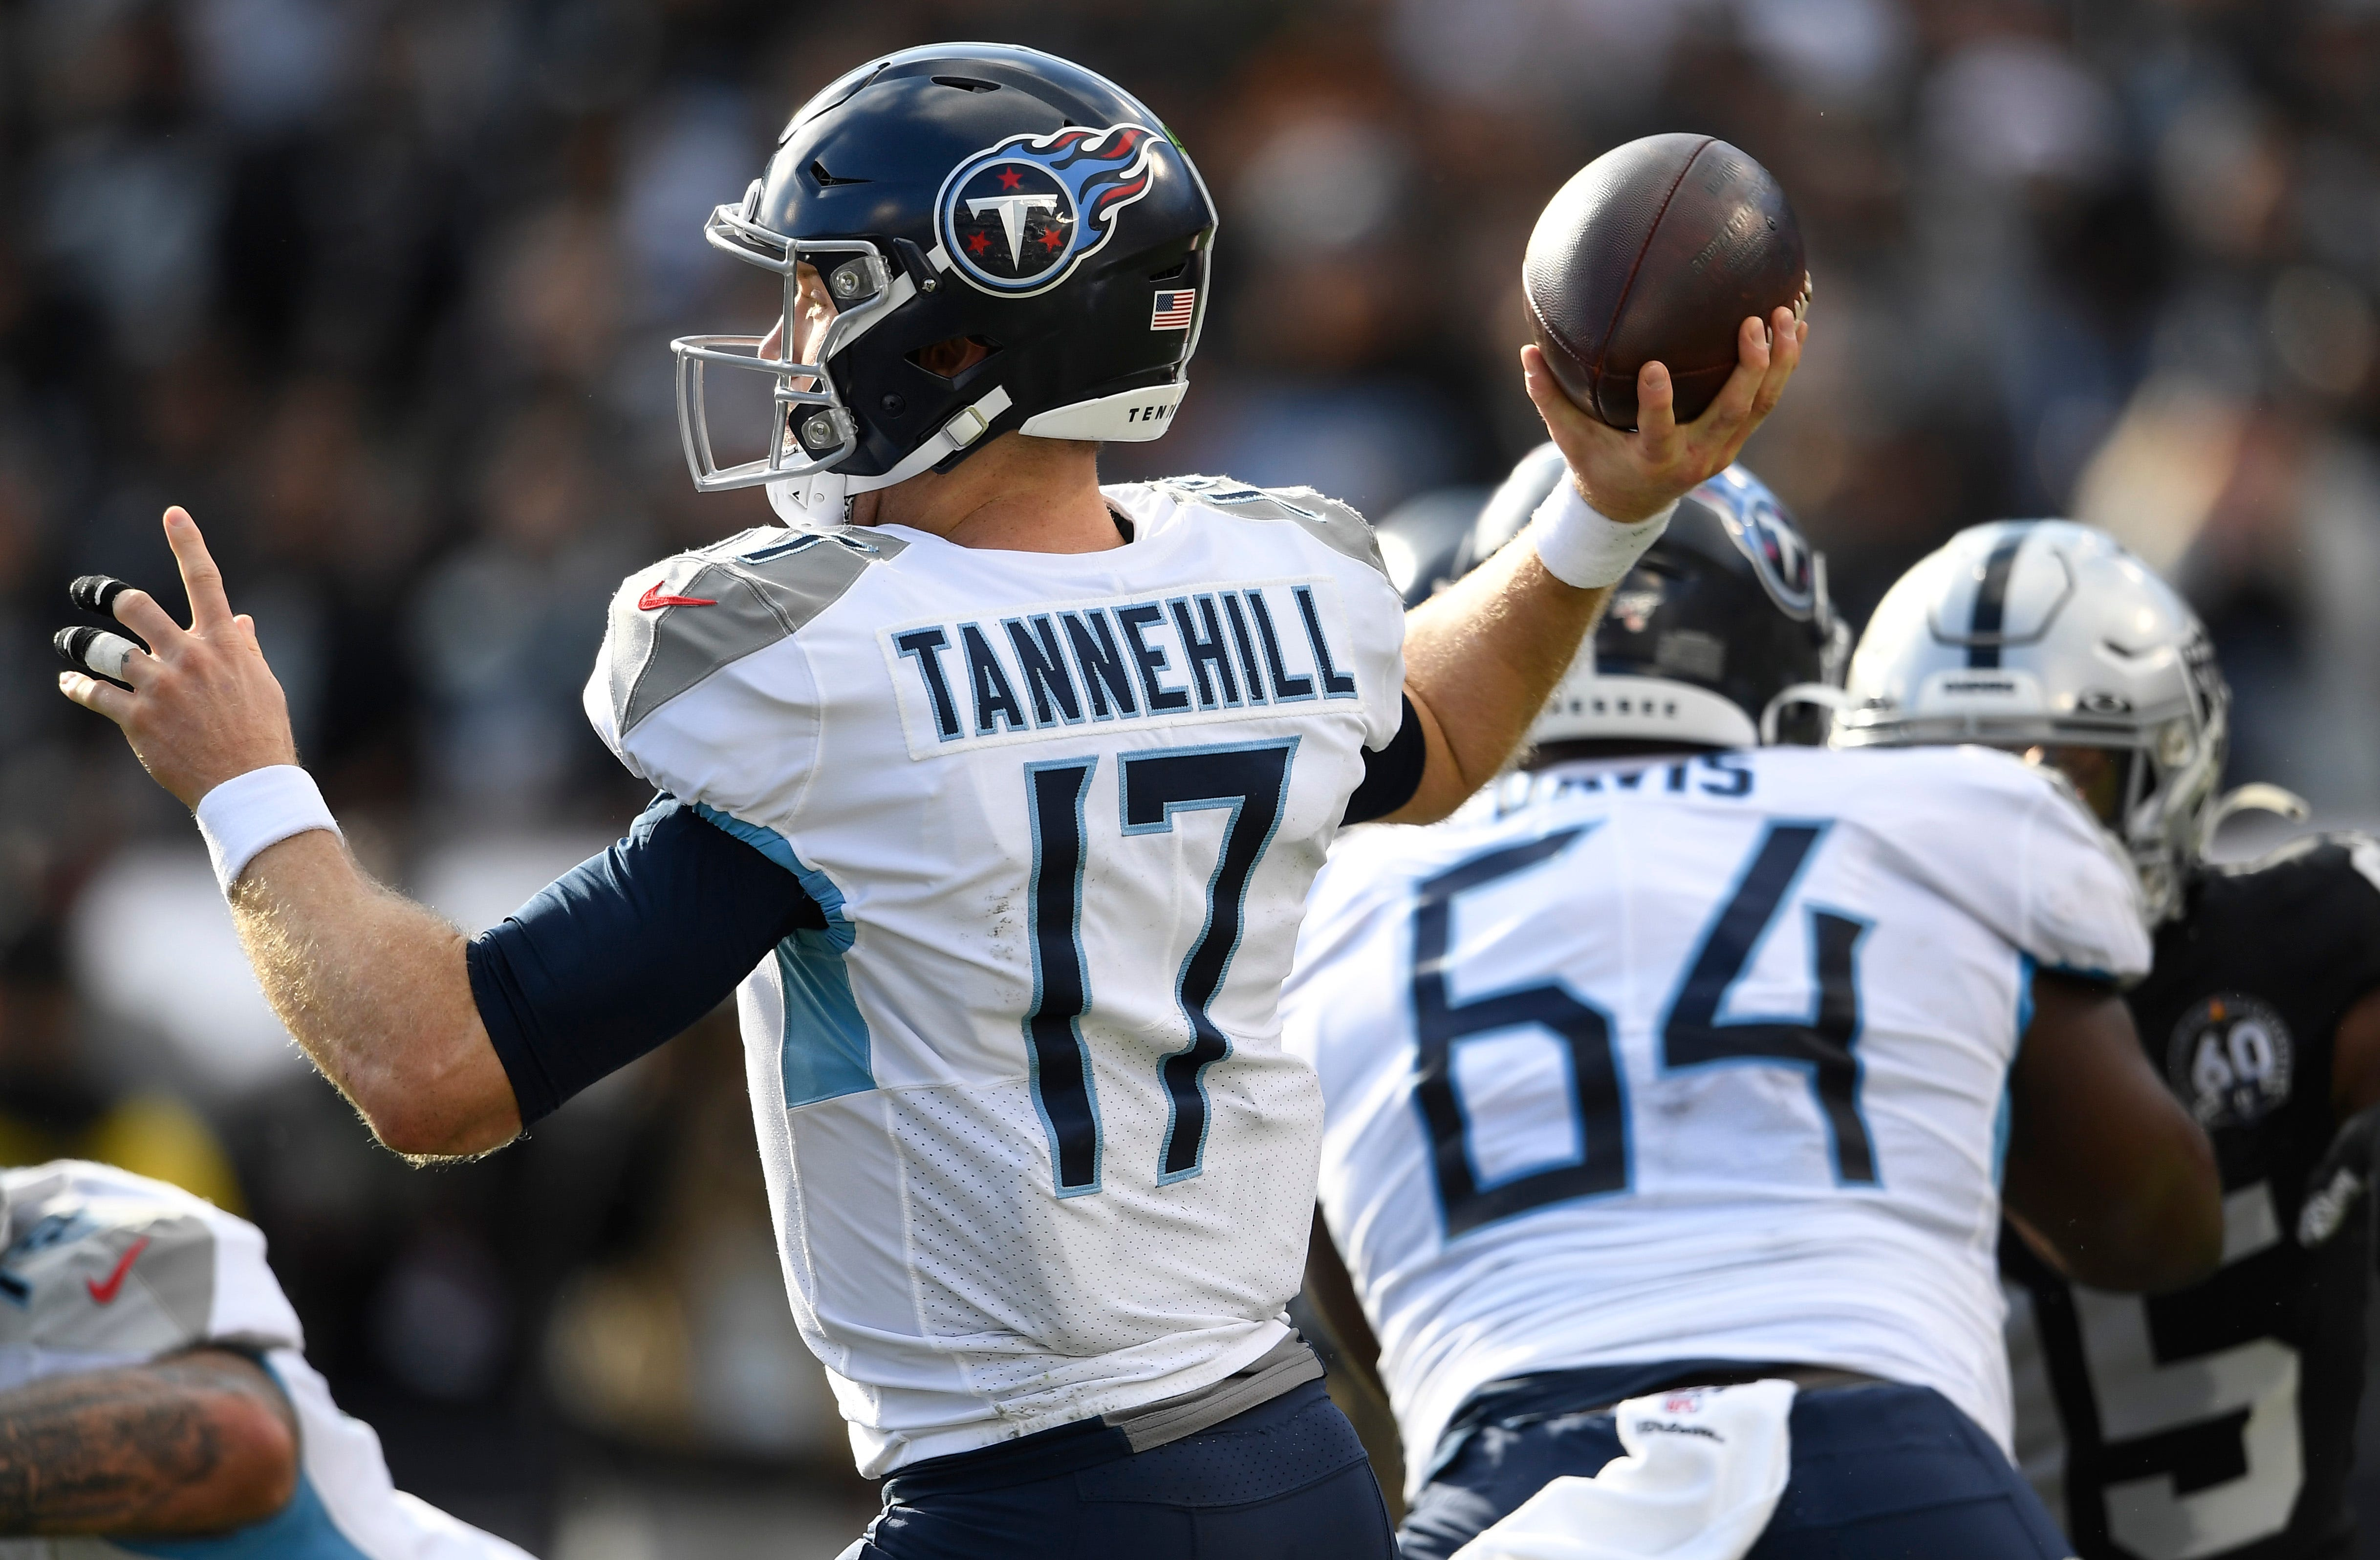 Tannehill: Titans QB lays out Raiders defensive tackle...